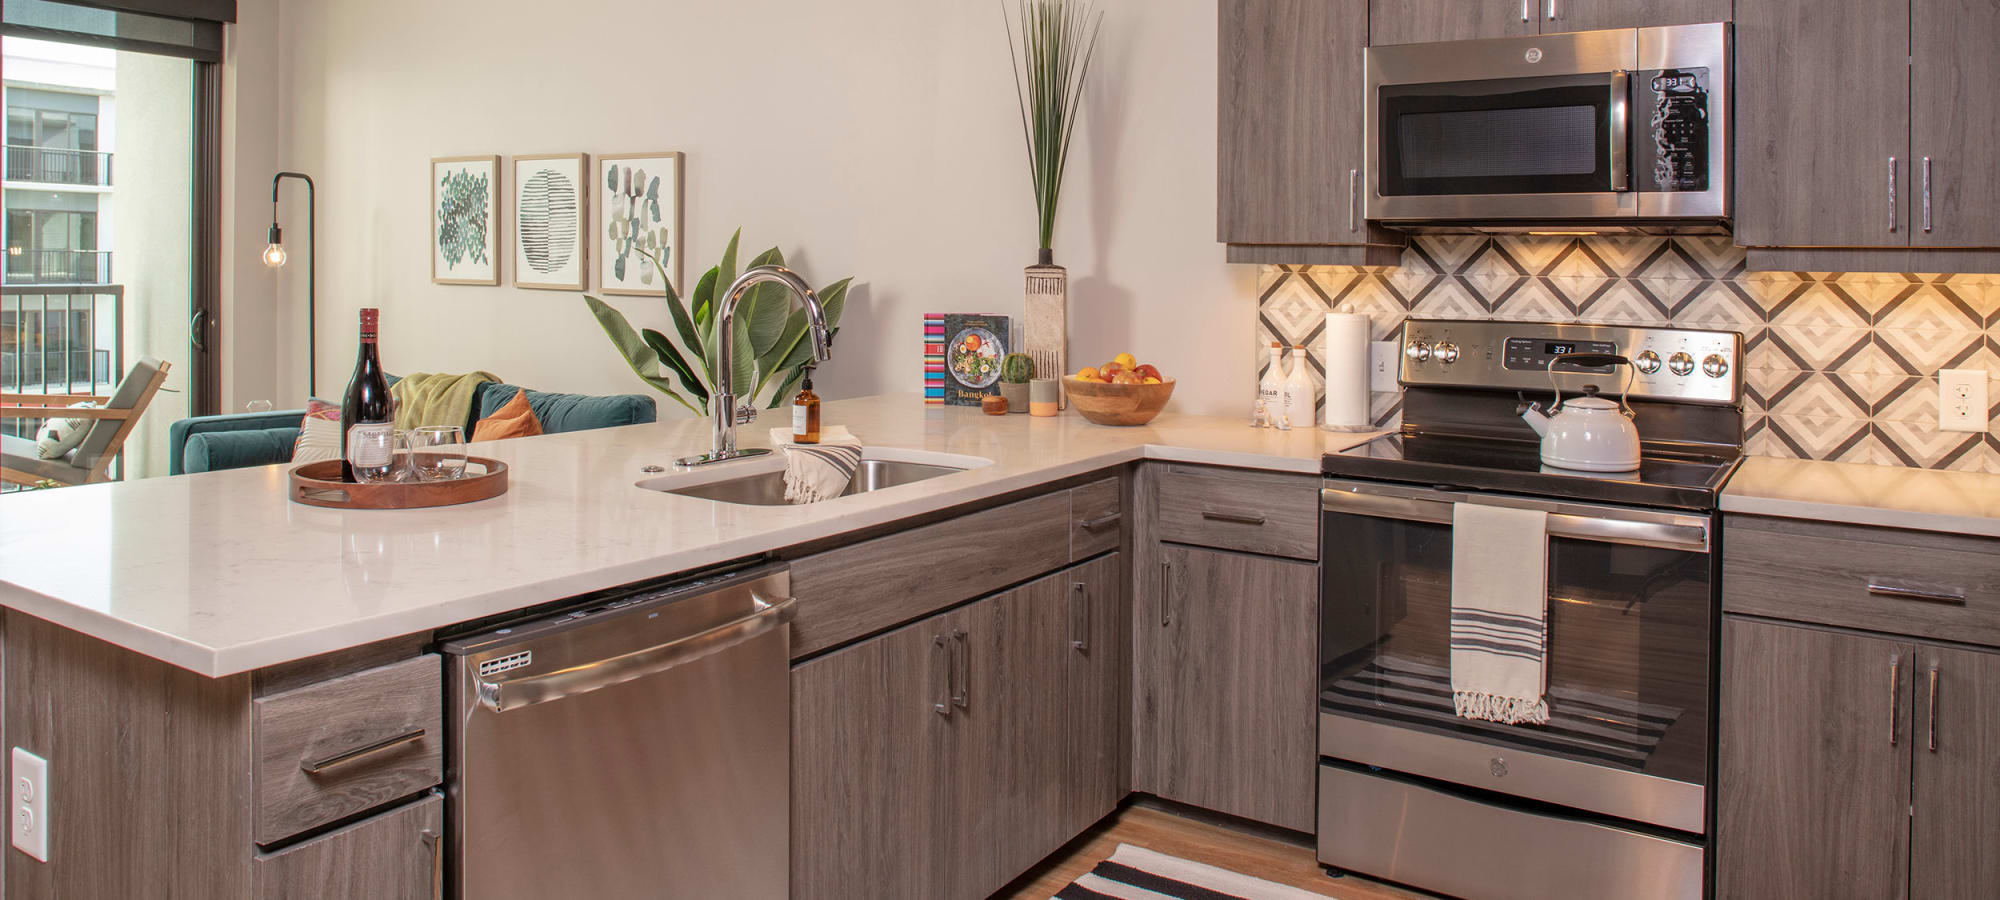 modern kitchen and counter tops at The Local Apartments in Tempe, Arizona